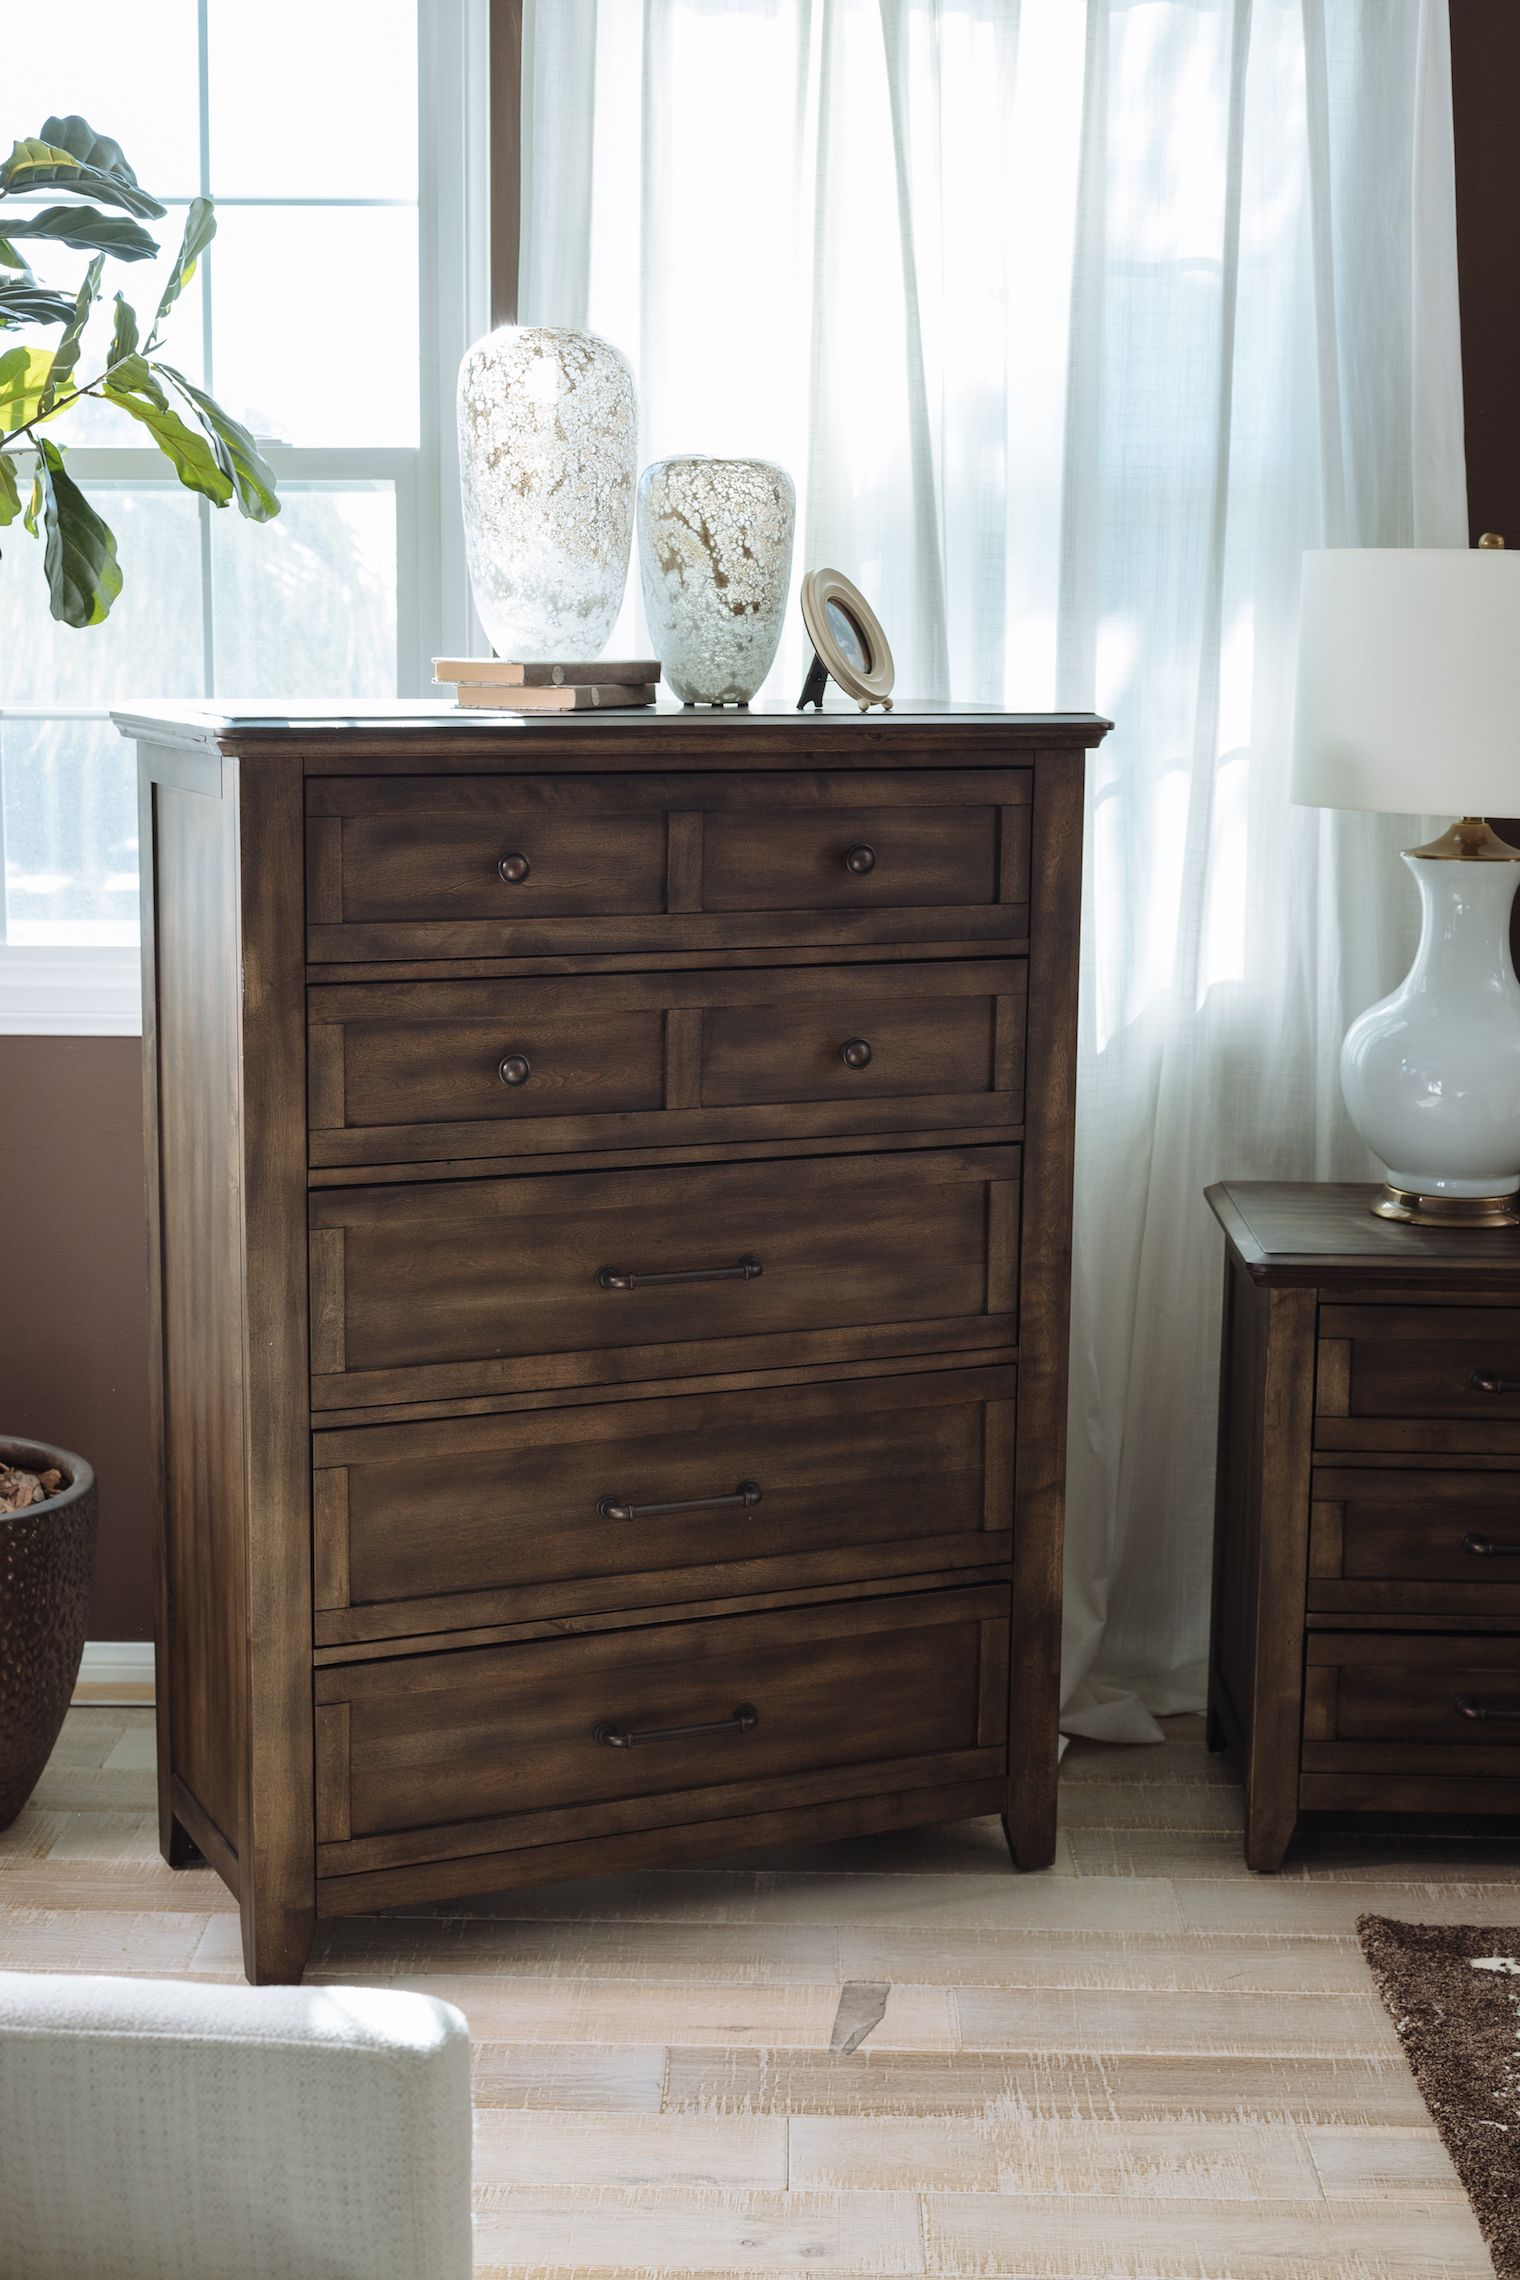 FiveDrawer Contemporary Chest in Birch Gray